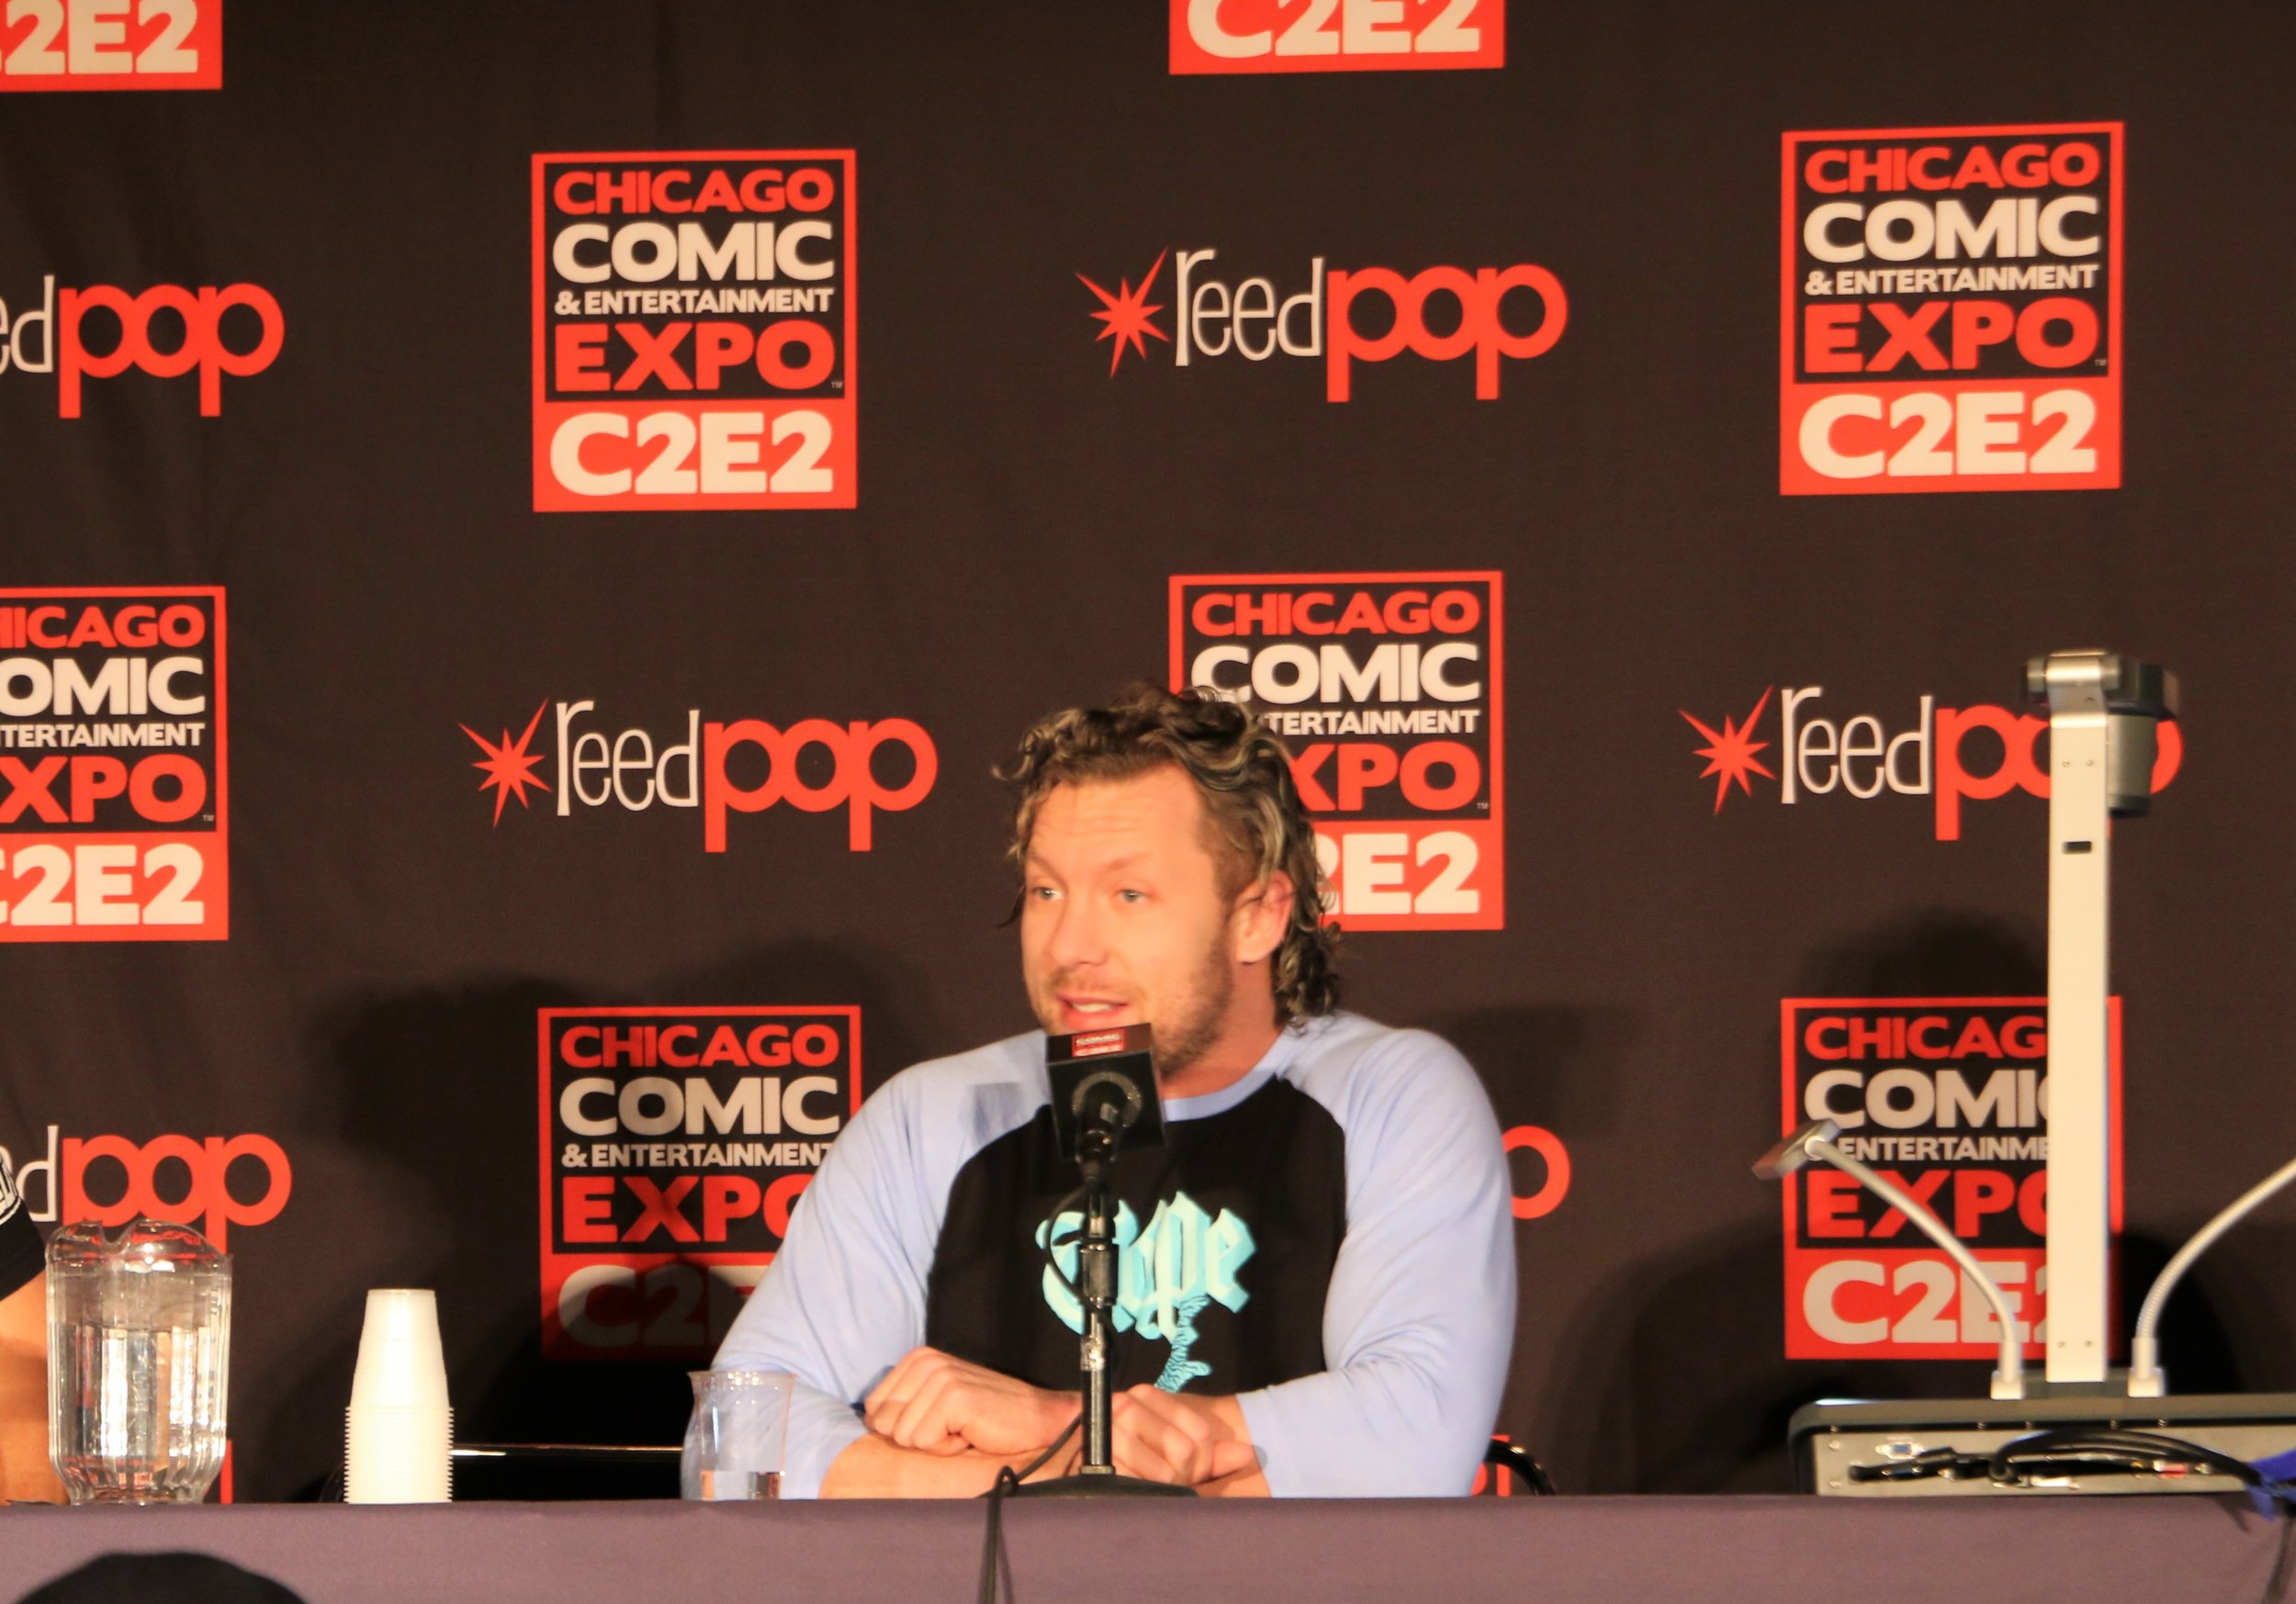 Kenny Omega answers a fan question during the All Elite Wrestling panel.